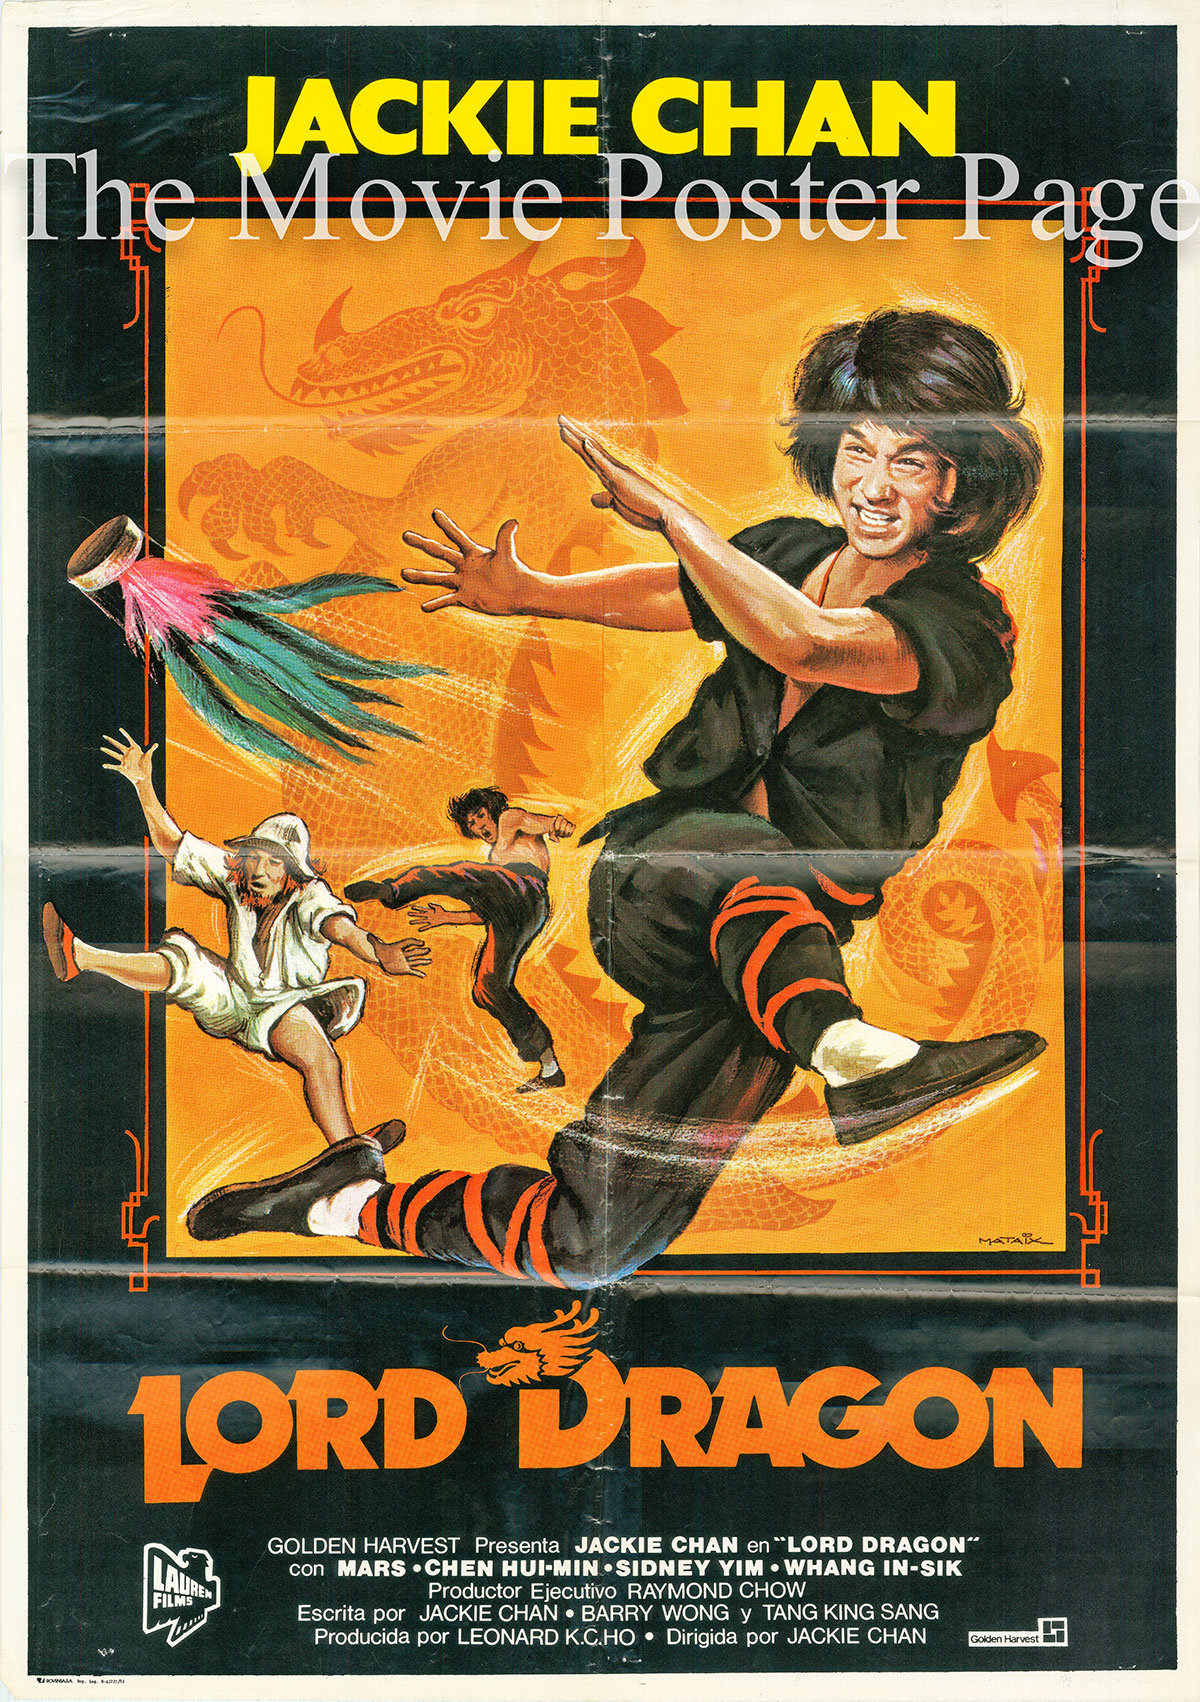 Pictured is a Spanish promotional poster for the 1982 Jackie Chan film Dragon Lord starring Jackie Chan.